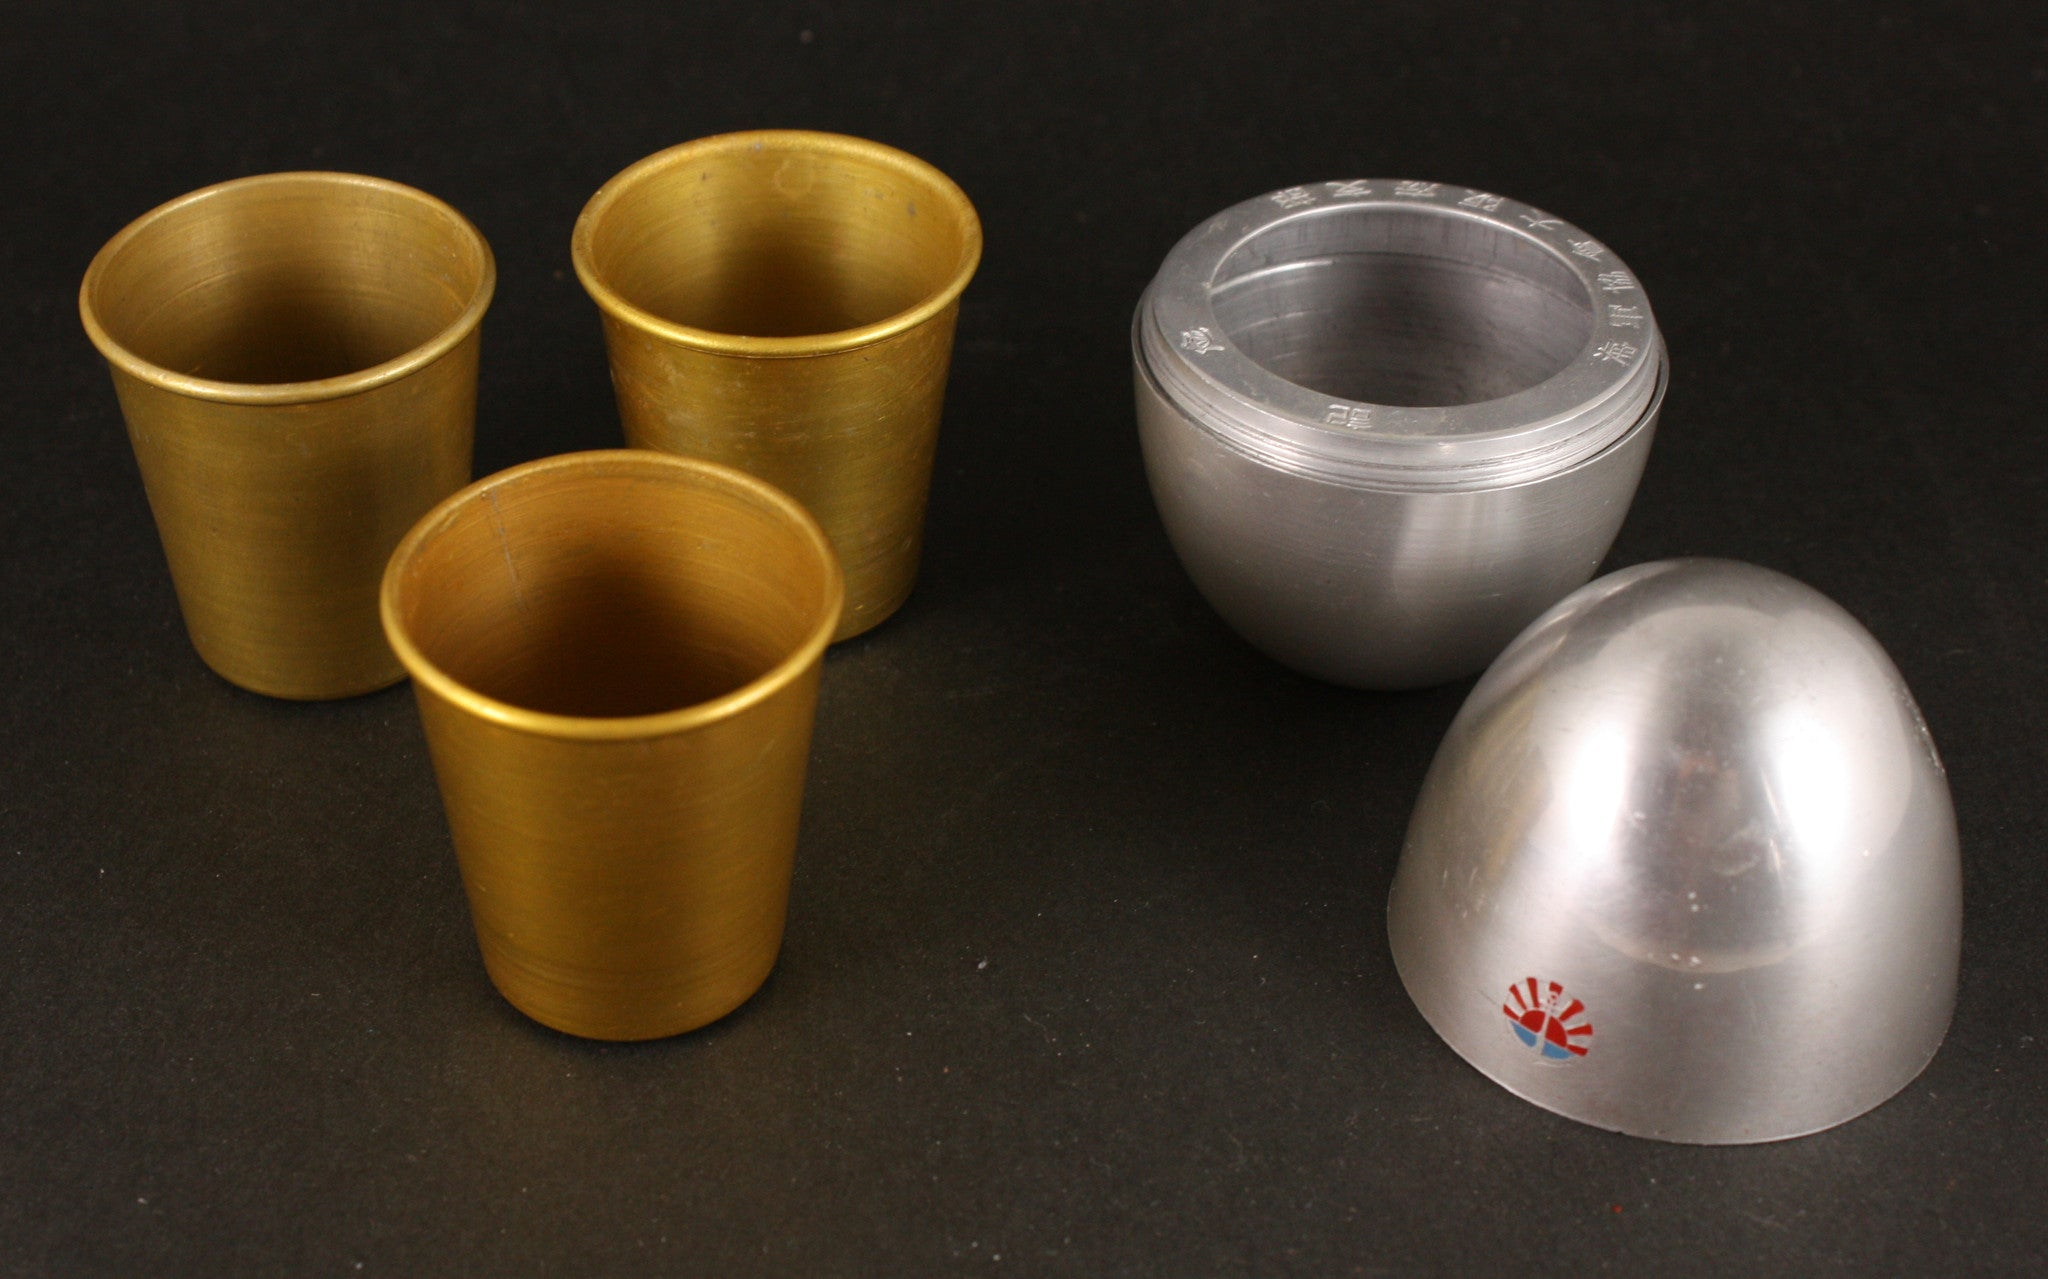 Antique Japanese Aluminium Navy Association Egg Shaped Portable Sake Cups